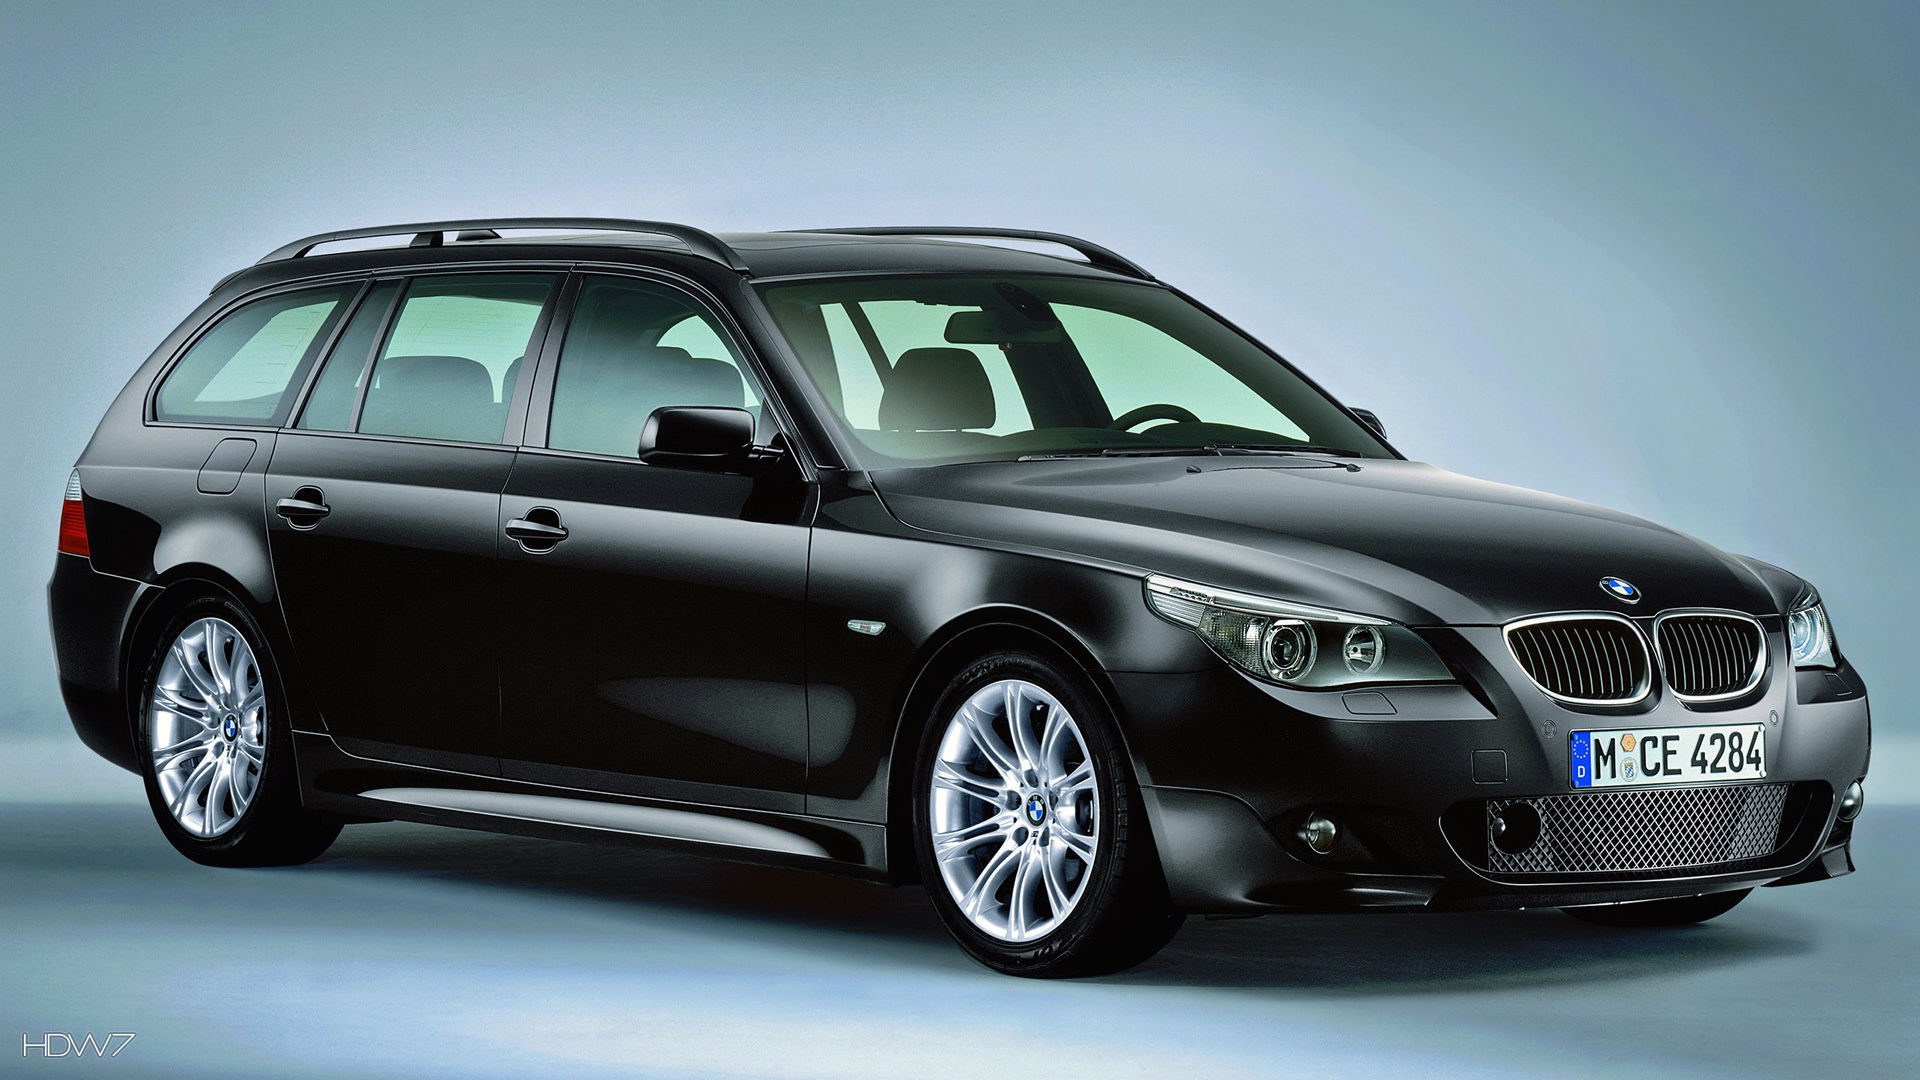 bmw 530i touring m sport package 2004 car hd wallpaper